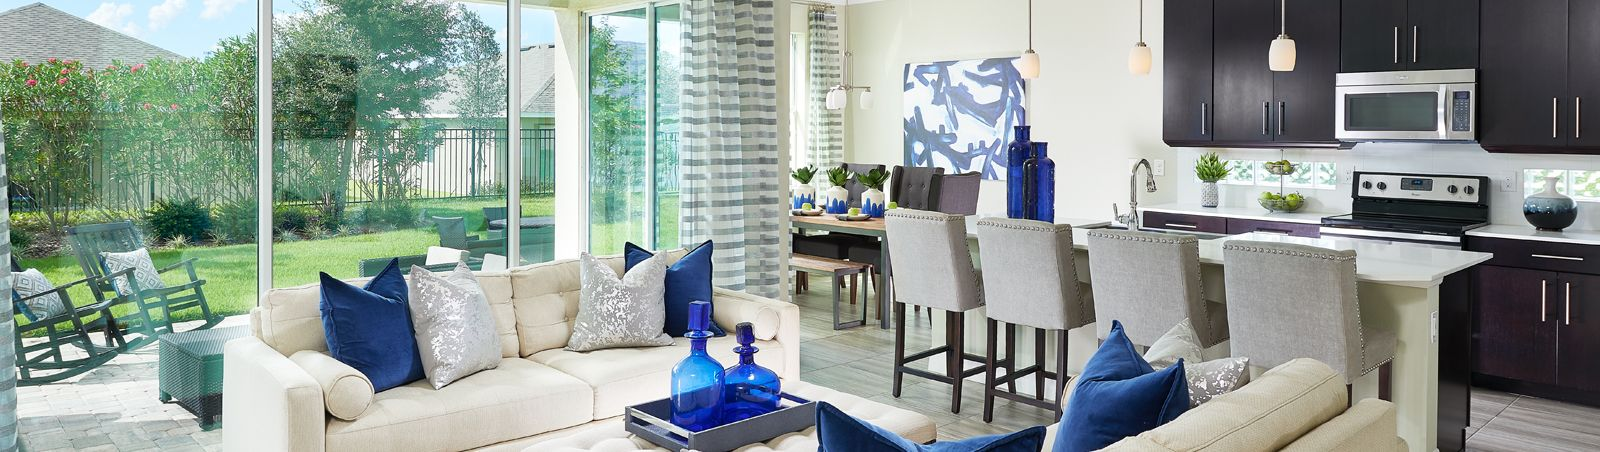 Crofton Springs at Providence Residential